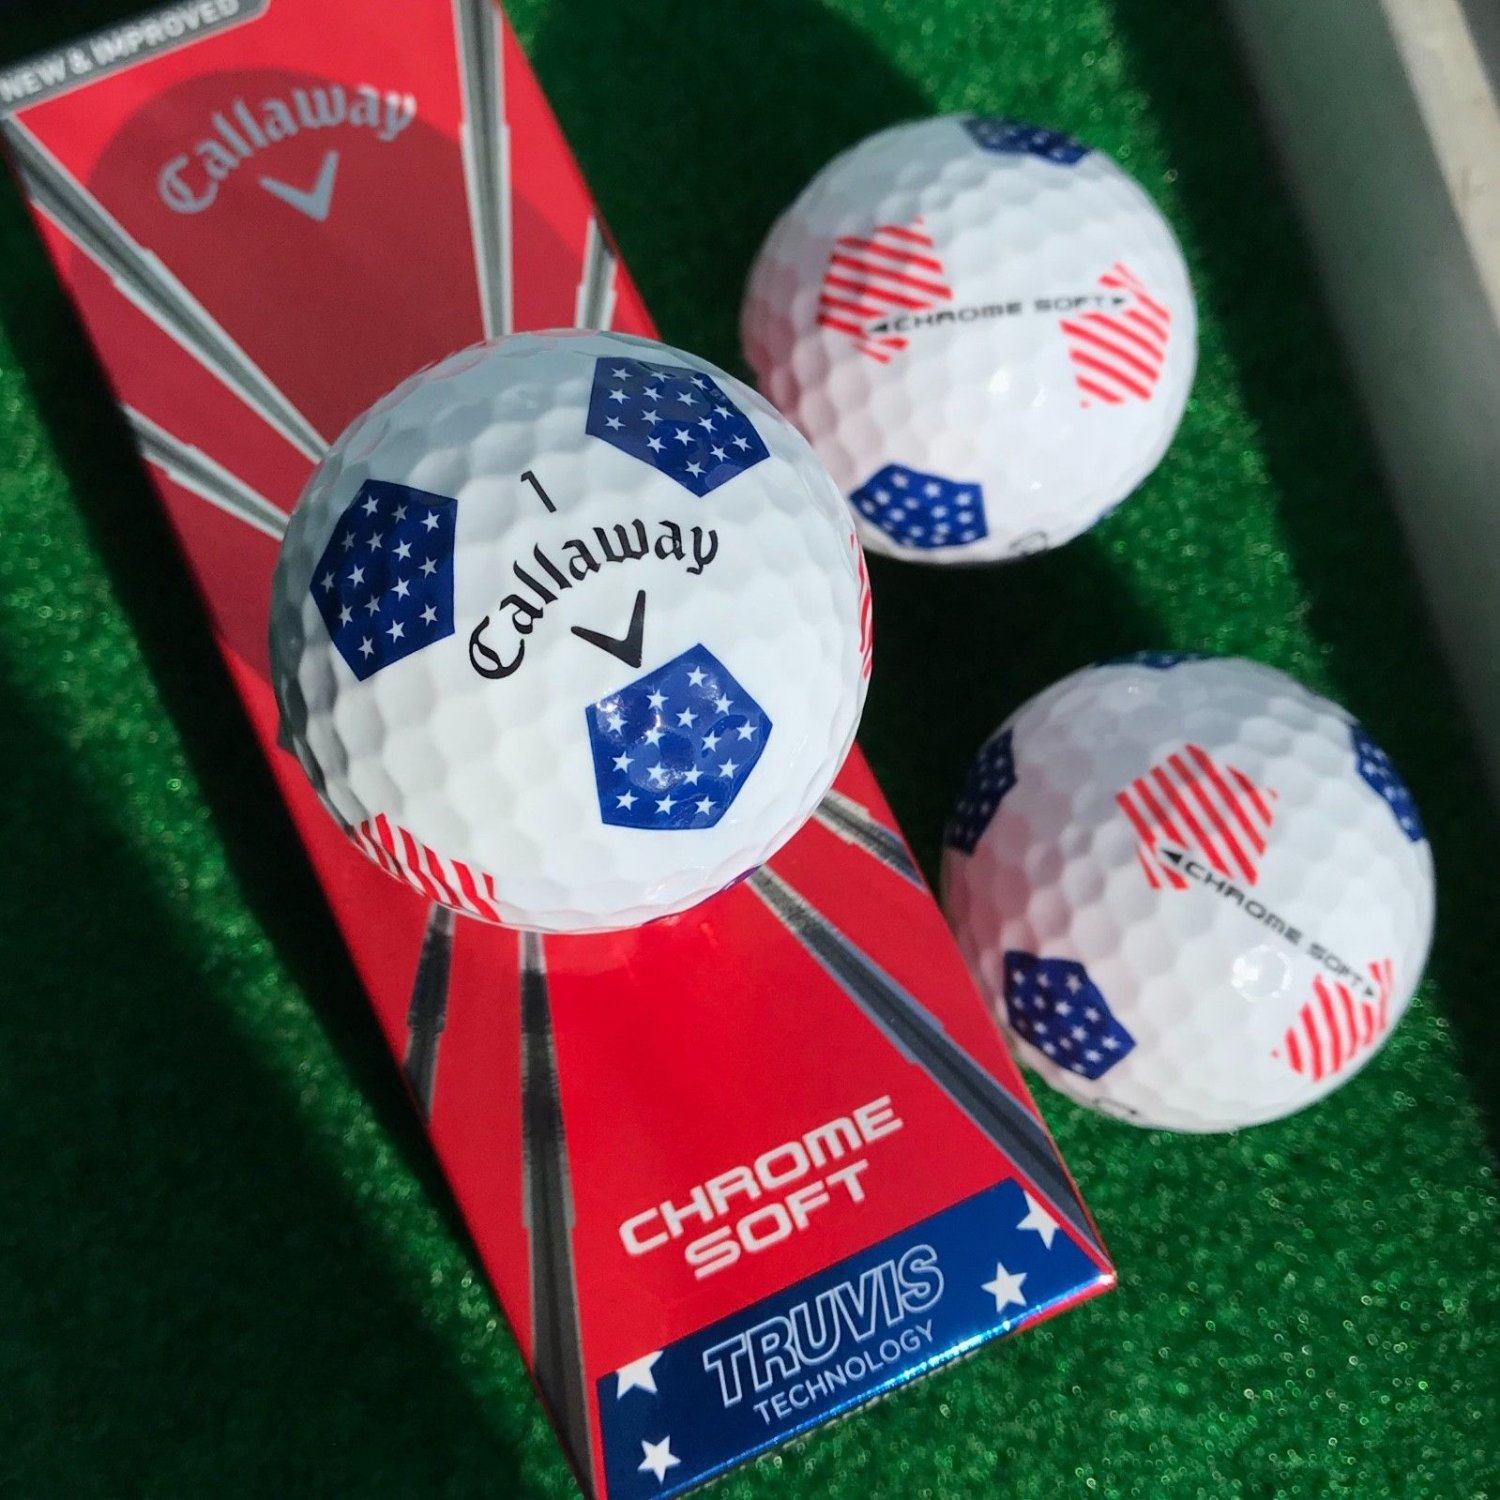 Calloway 2018 Chrome Soft Golf Balls (3 balls)  Red, White & Blue Edition